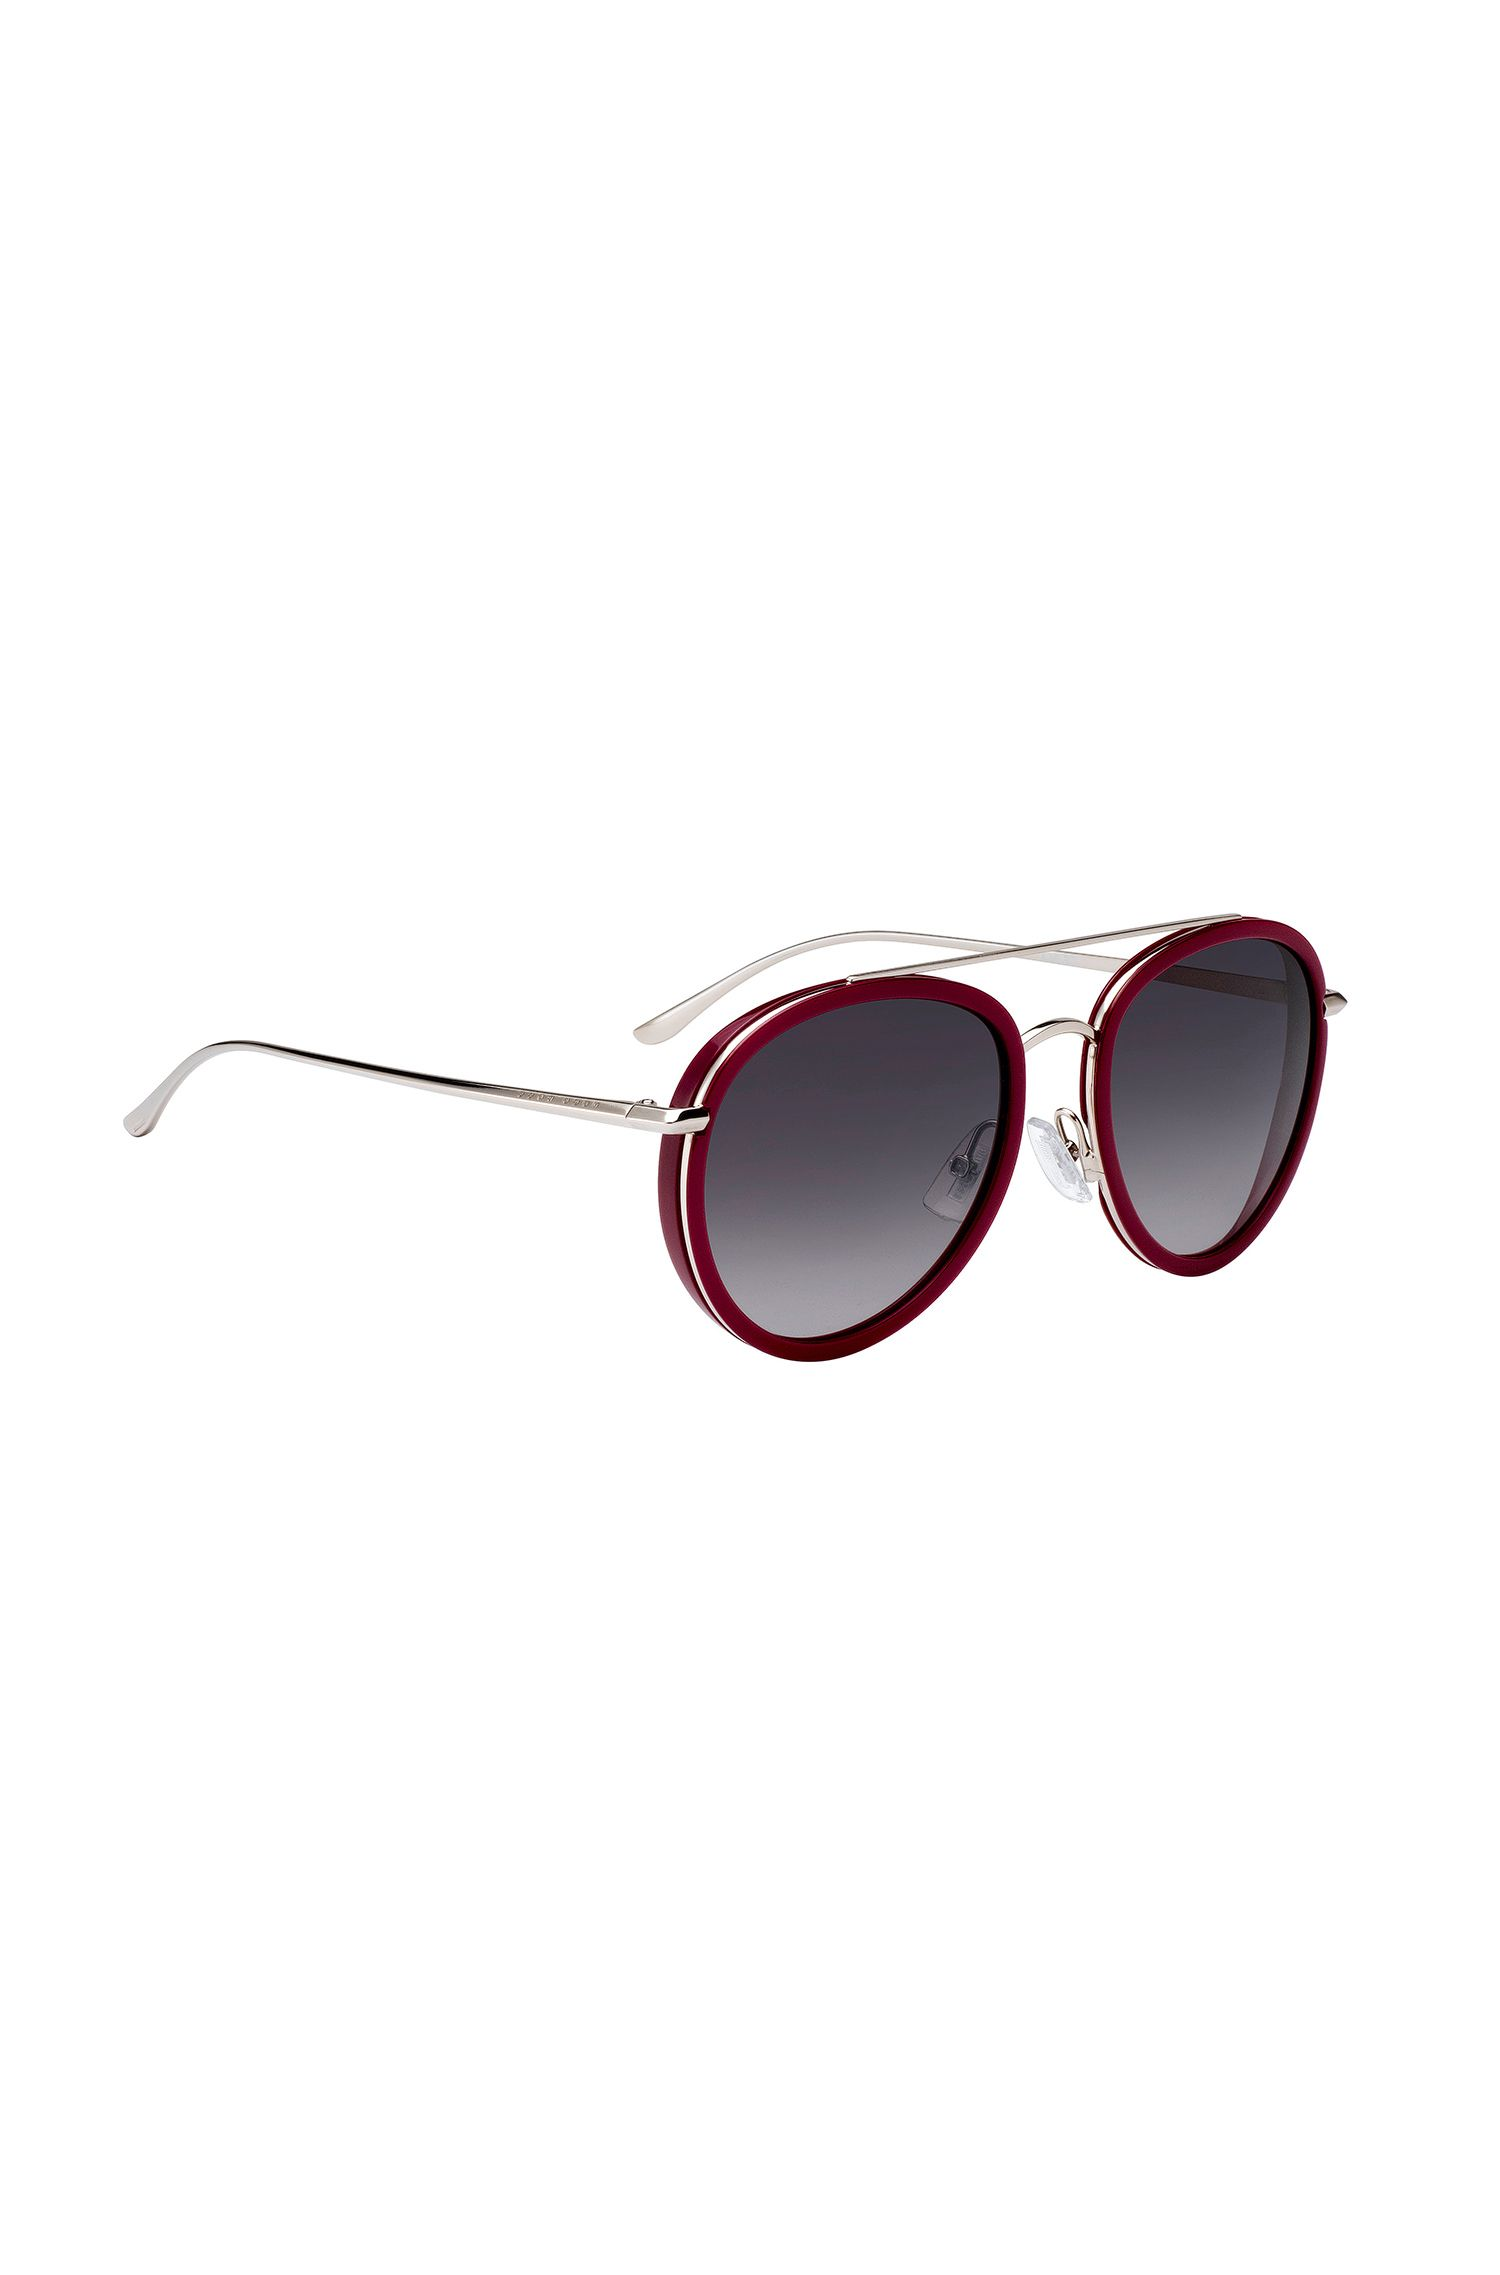 Double-bridge sunglasses in berry acetate